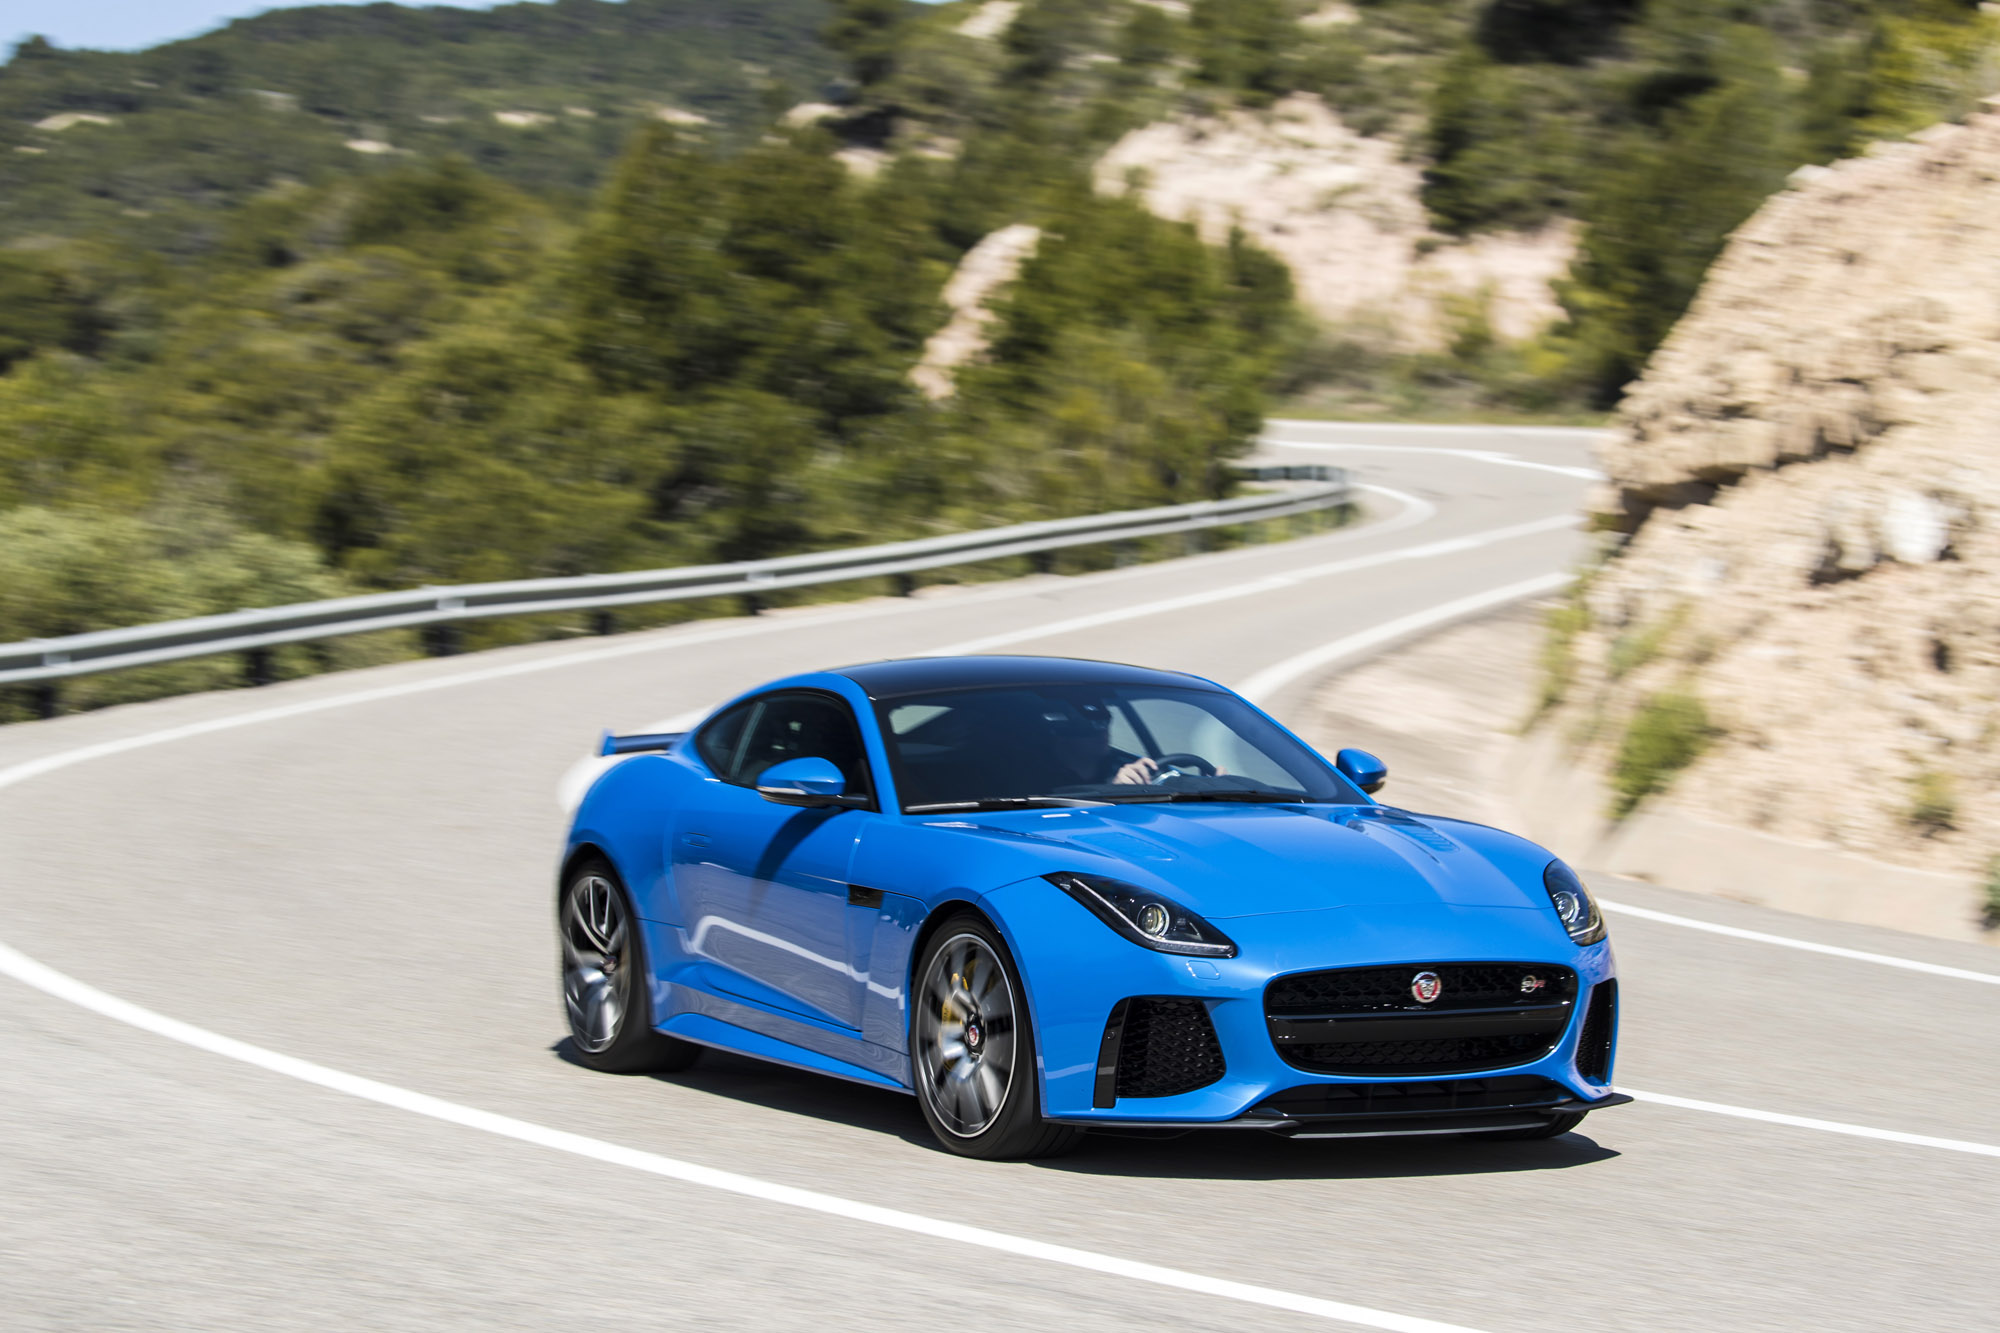 2017 jaguar f type svr review photos caradvice. Black Bedroom Furniture Sets. Home Design Ideas